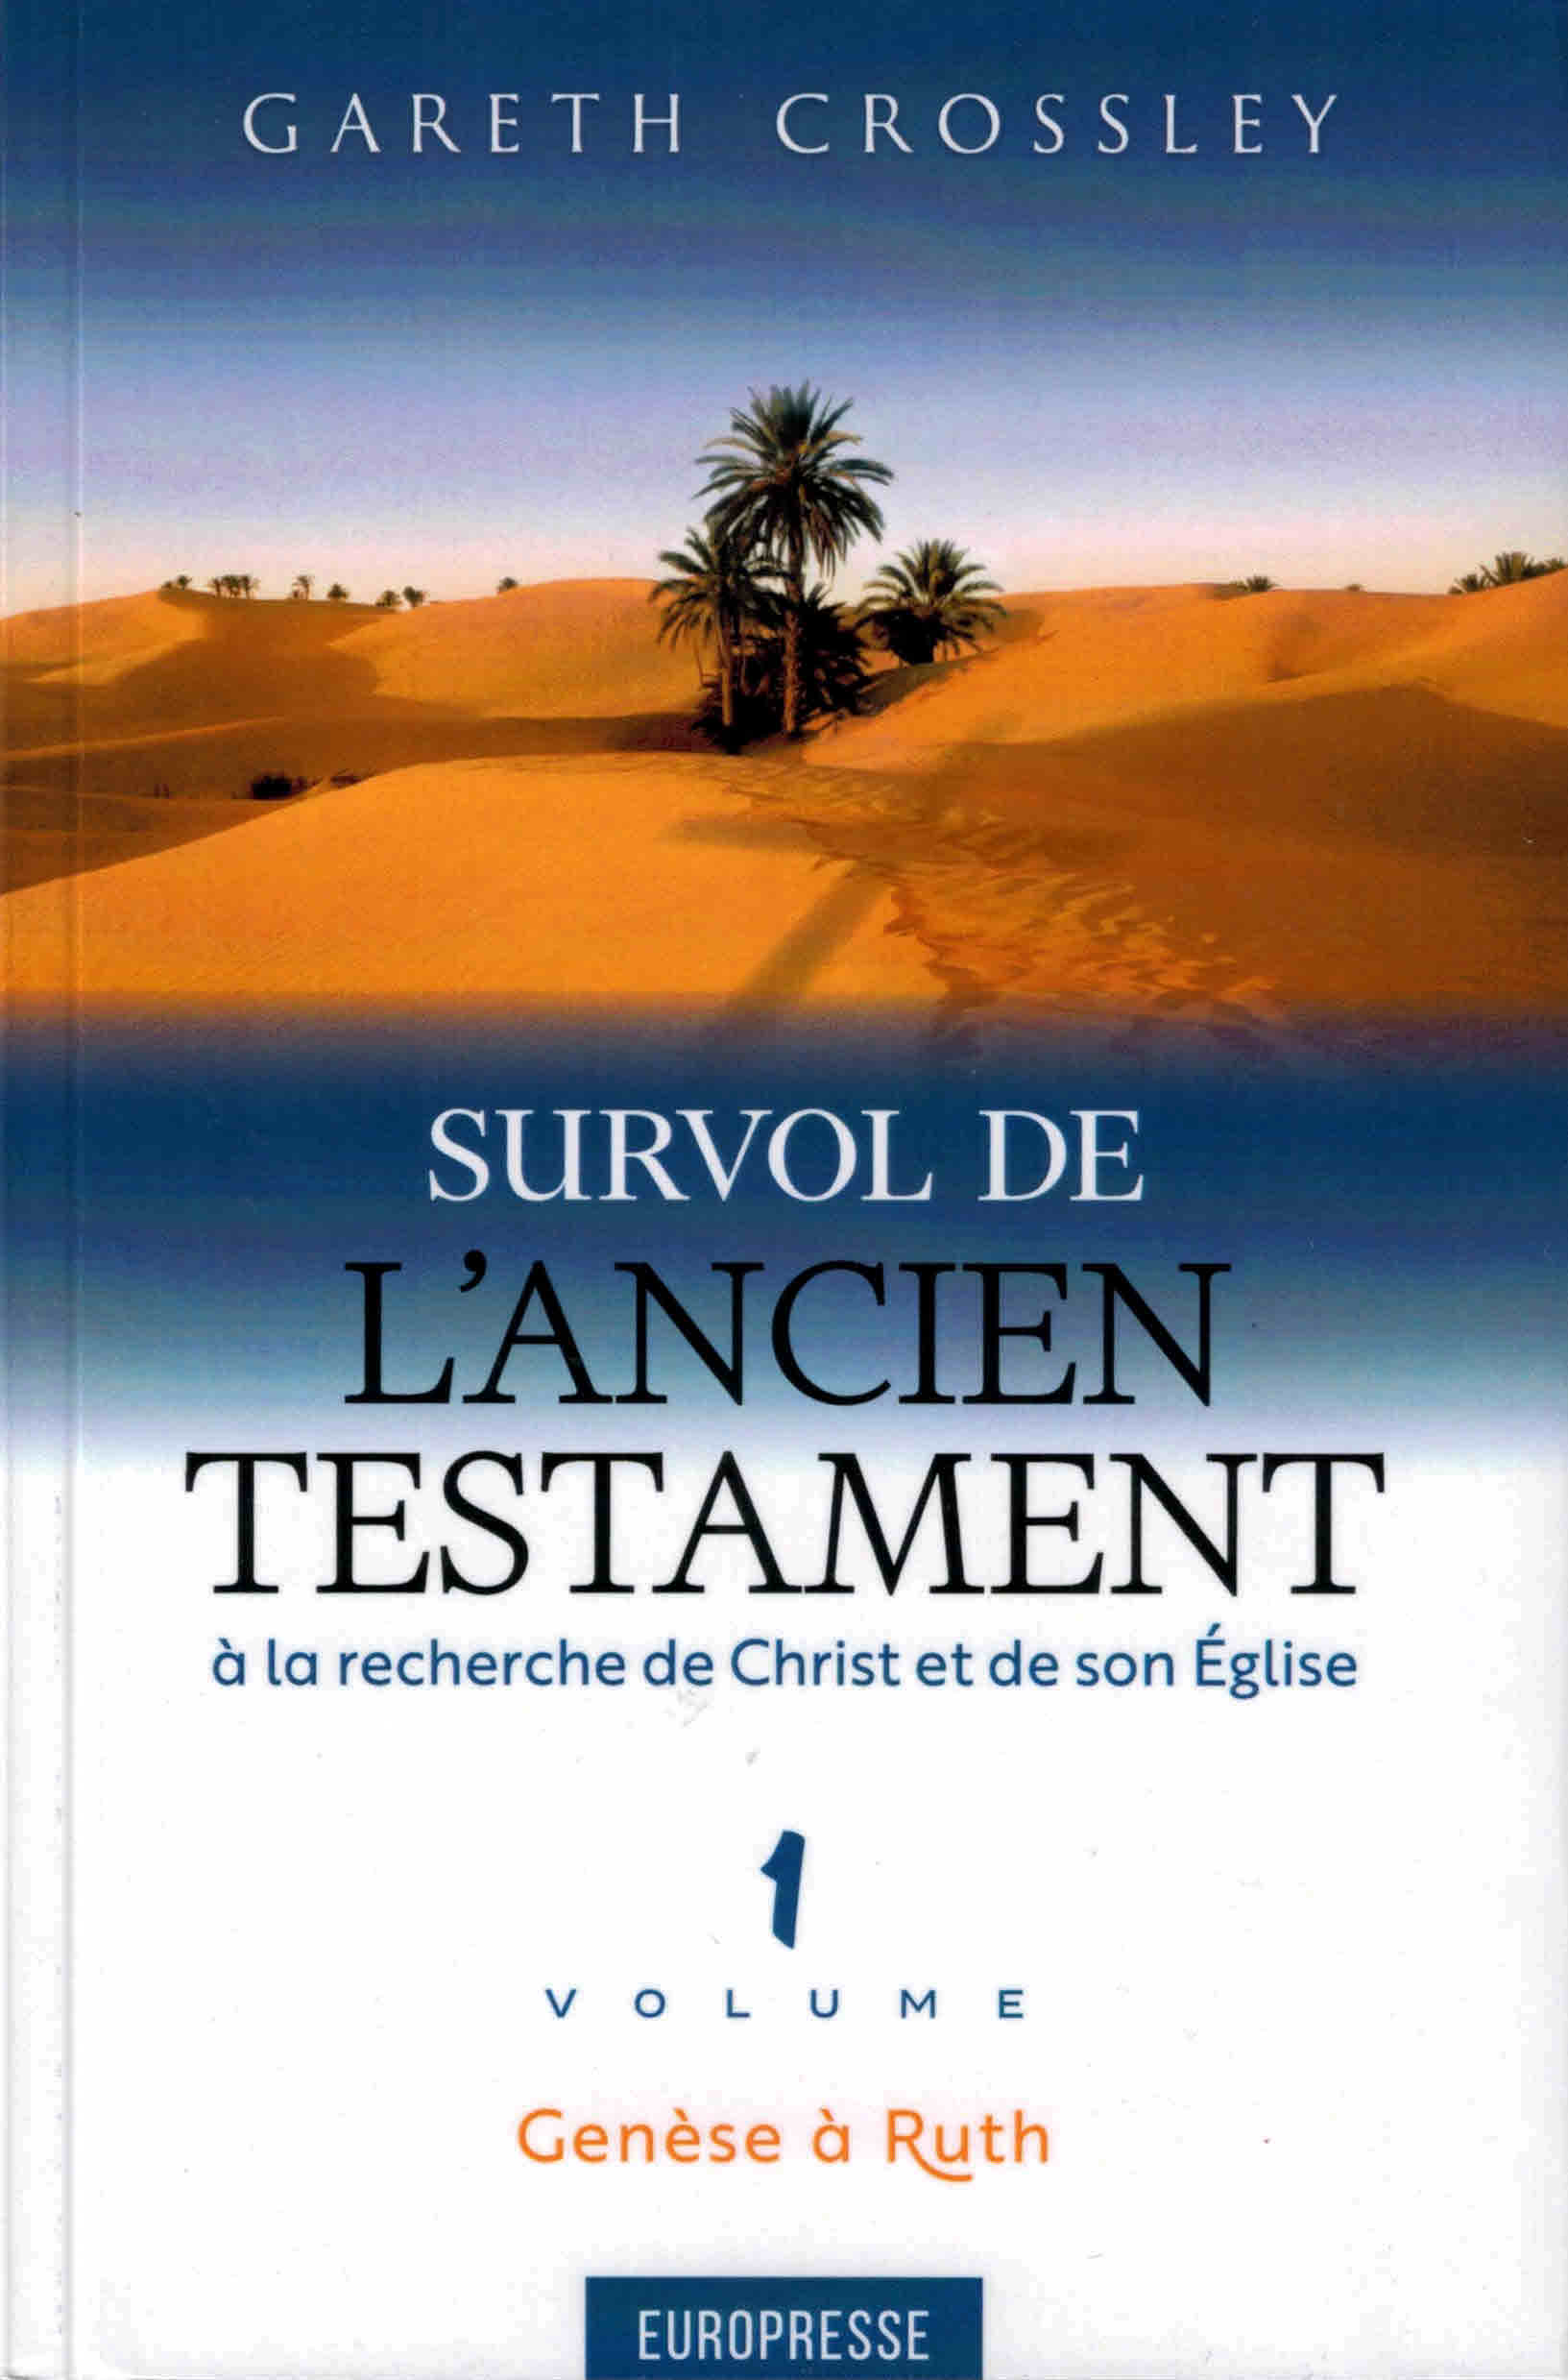 Survol de l'Ancien Testament volume 1